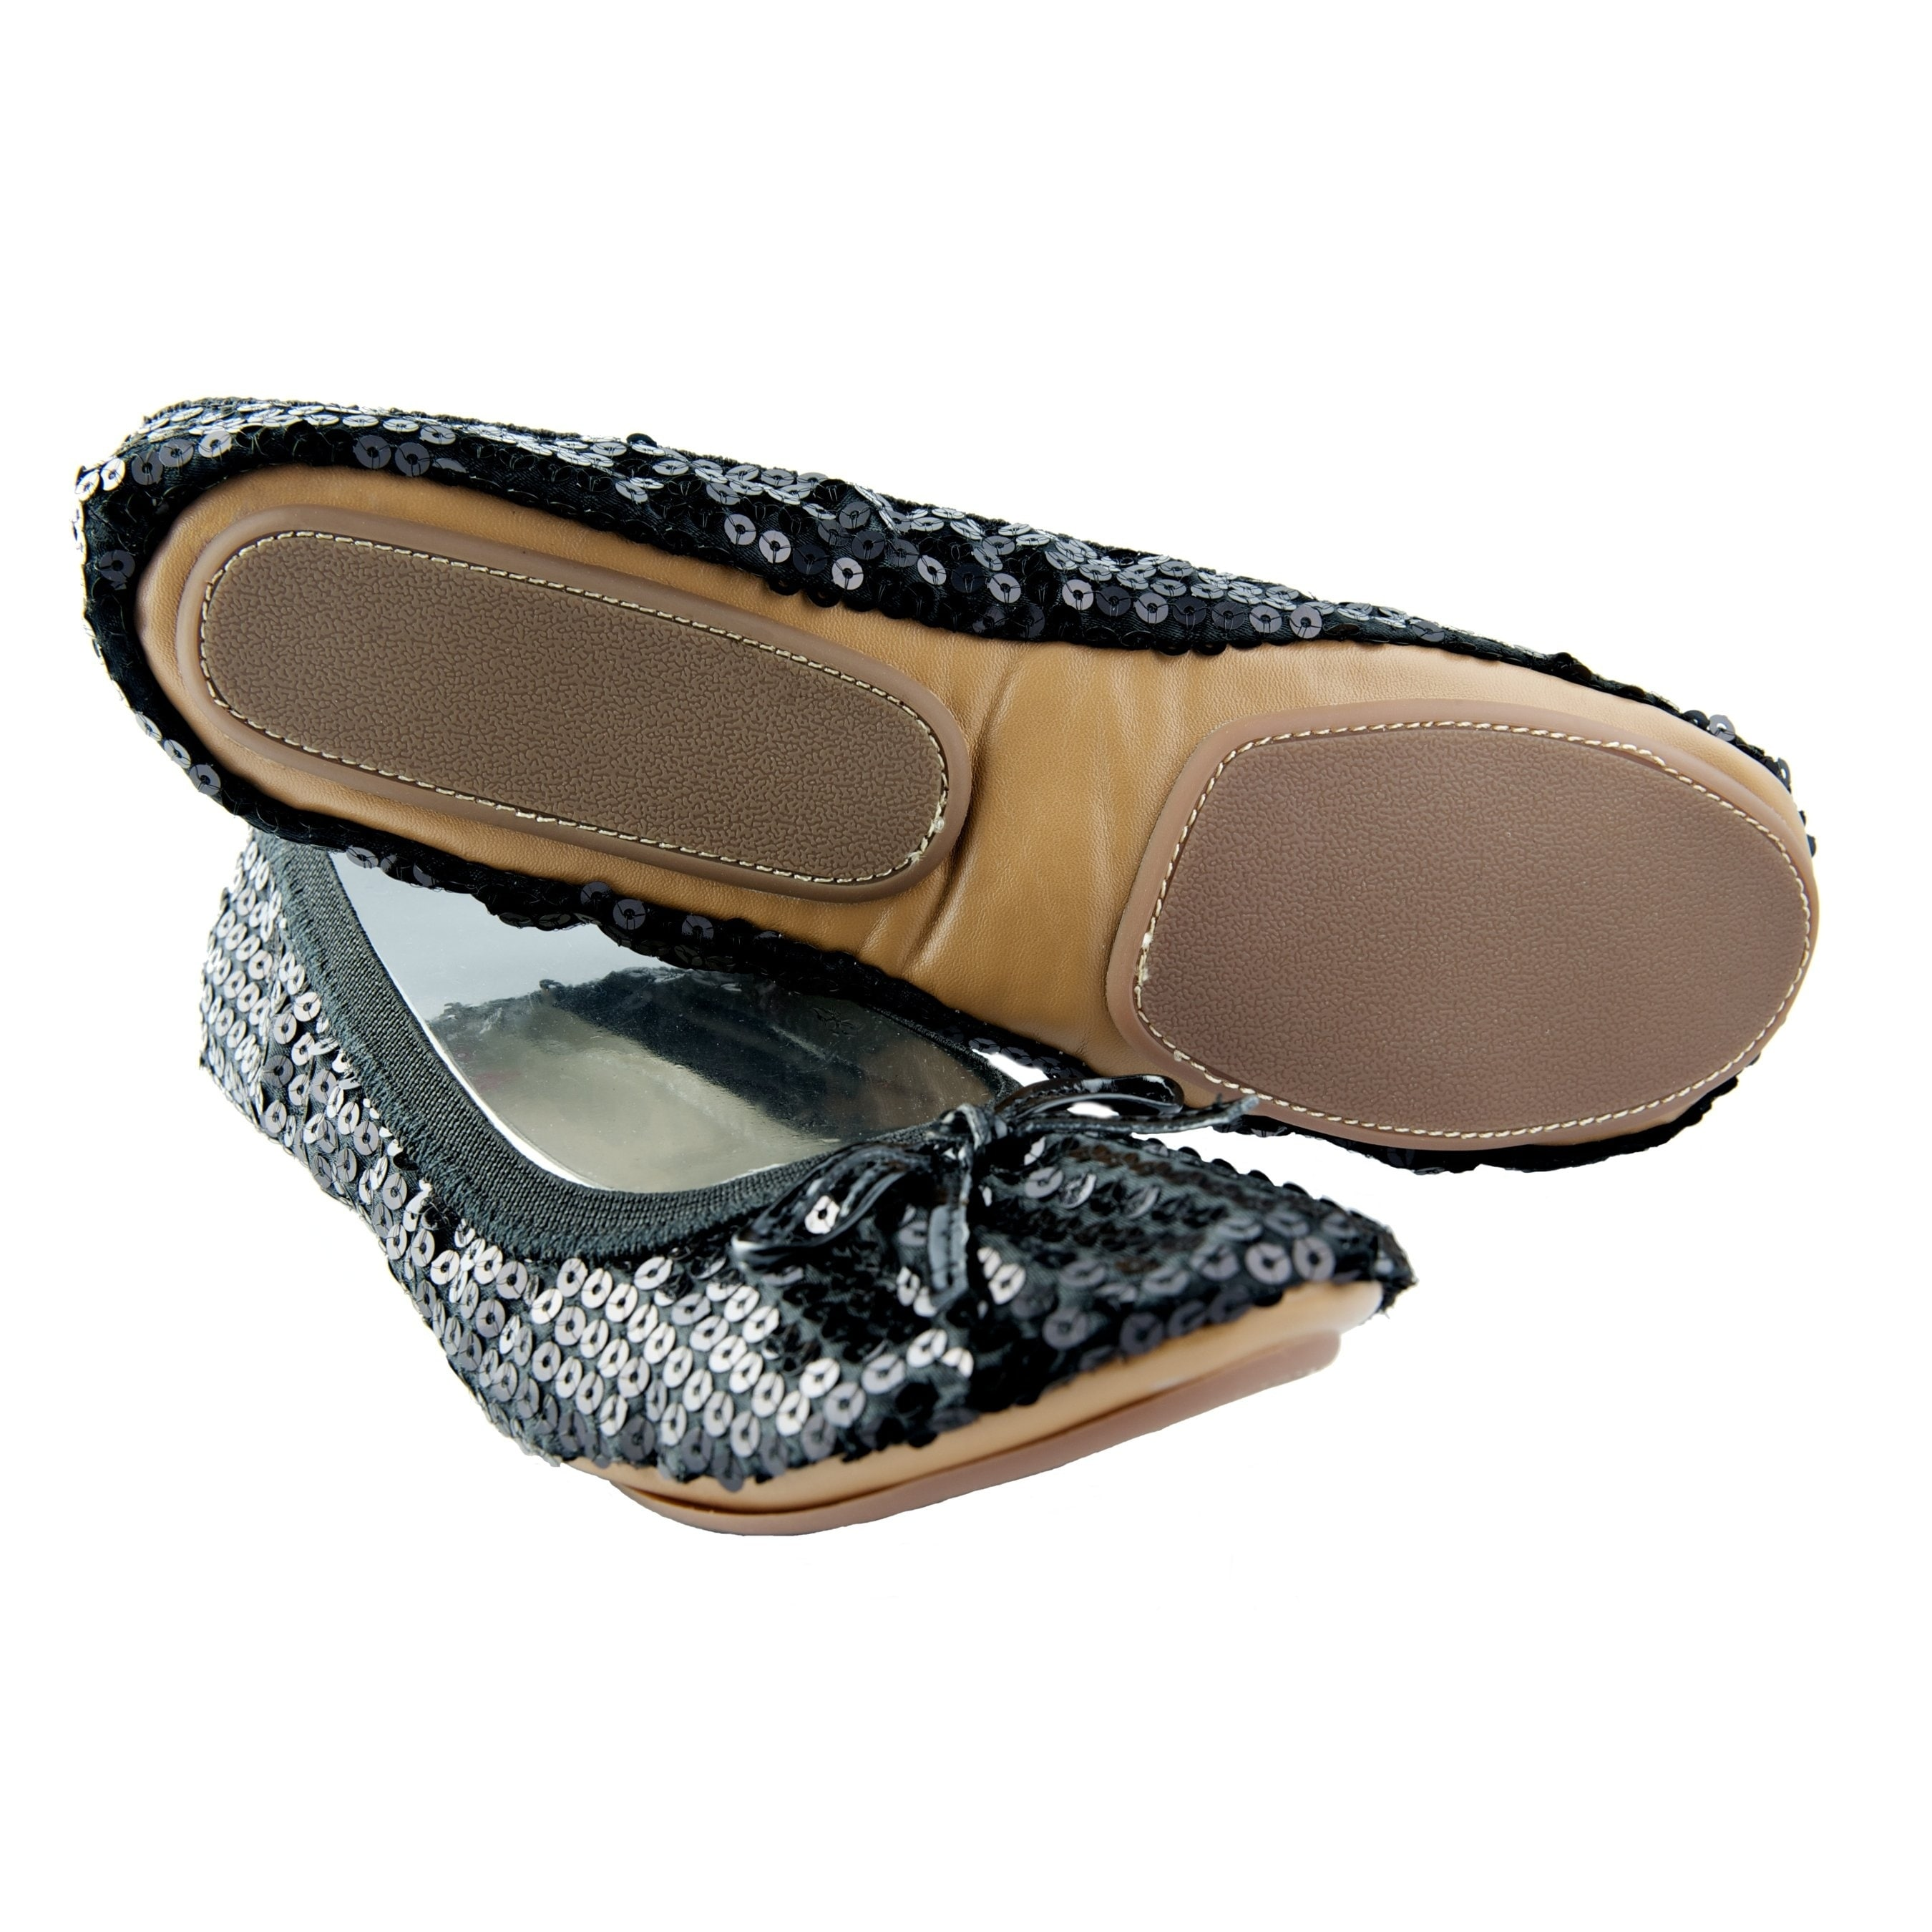 36cf9afe8a Shop Fit In Clouds Women's 'Black Sequin' Foldable/ Portable Flats - Free  Shipping On Orders Over $45 - Overstock - 5761807